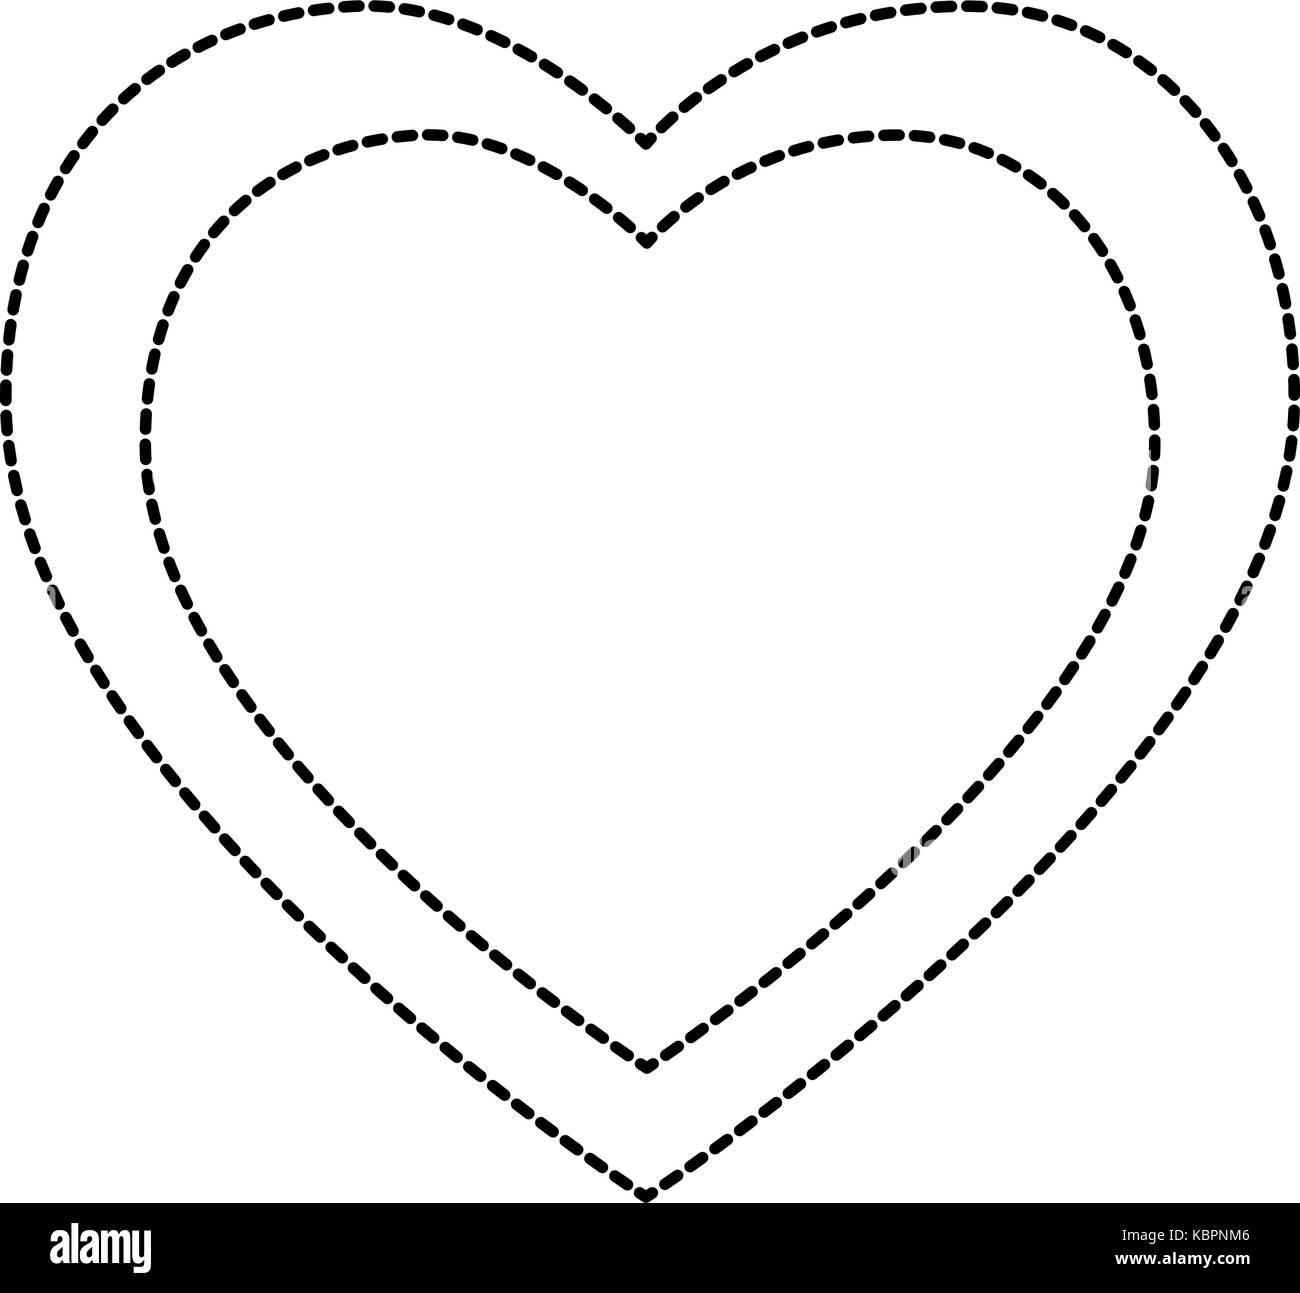 arcade game black and white stock photos images page 3 alamy Classic Arcade Games List pixelated heart game icon vector illustration design stock image